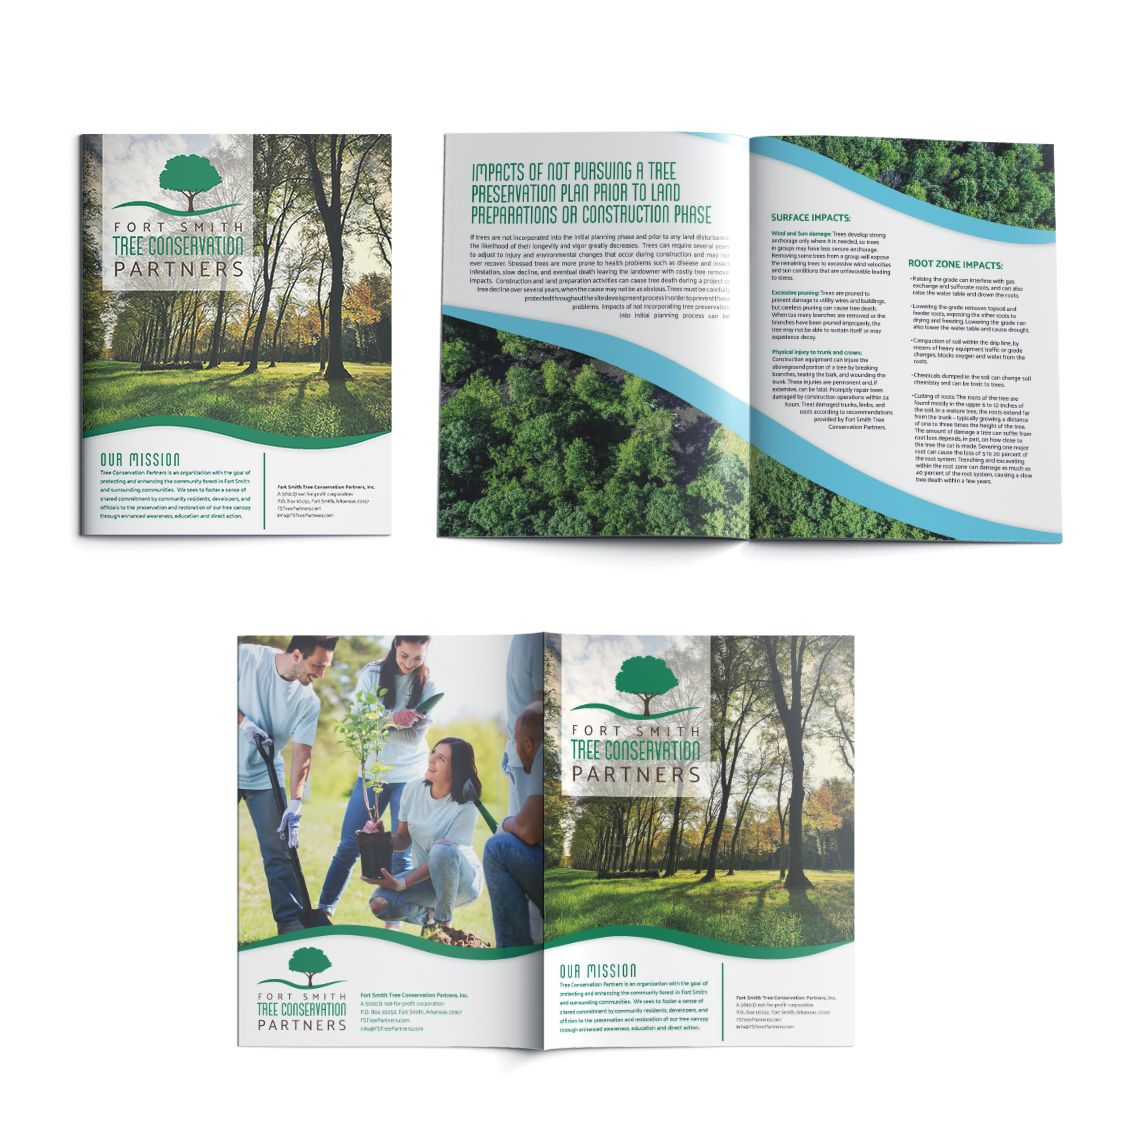 Fort Smith Tree Conservation Partners Brochure